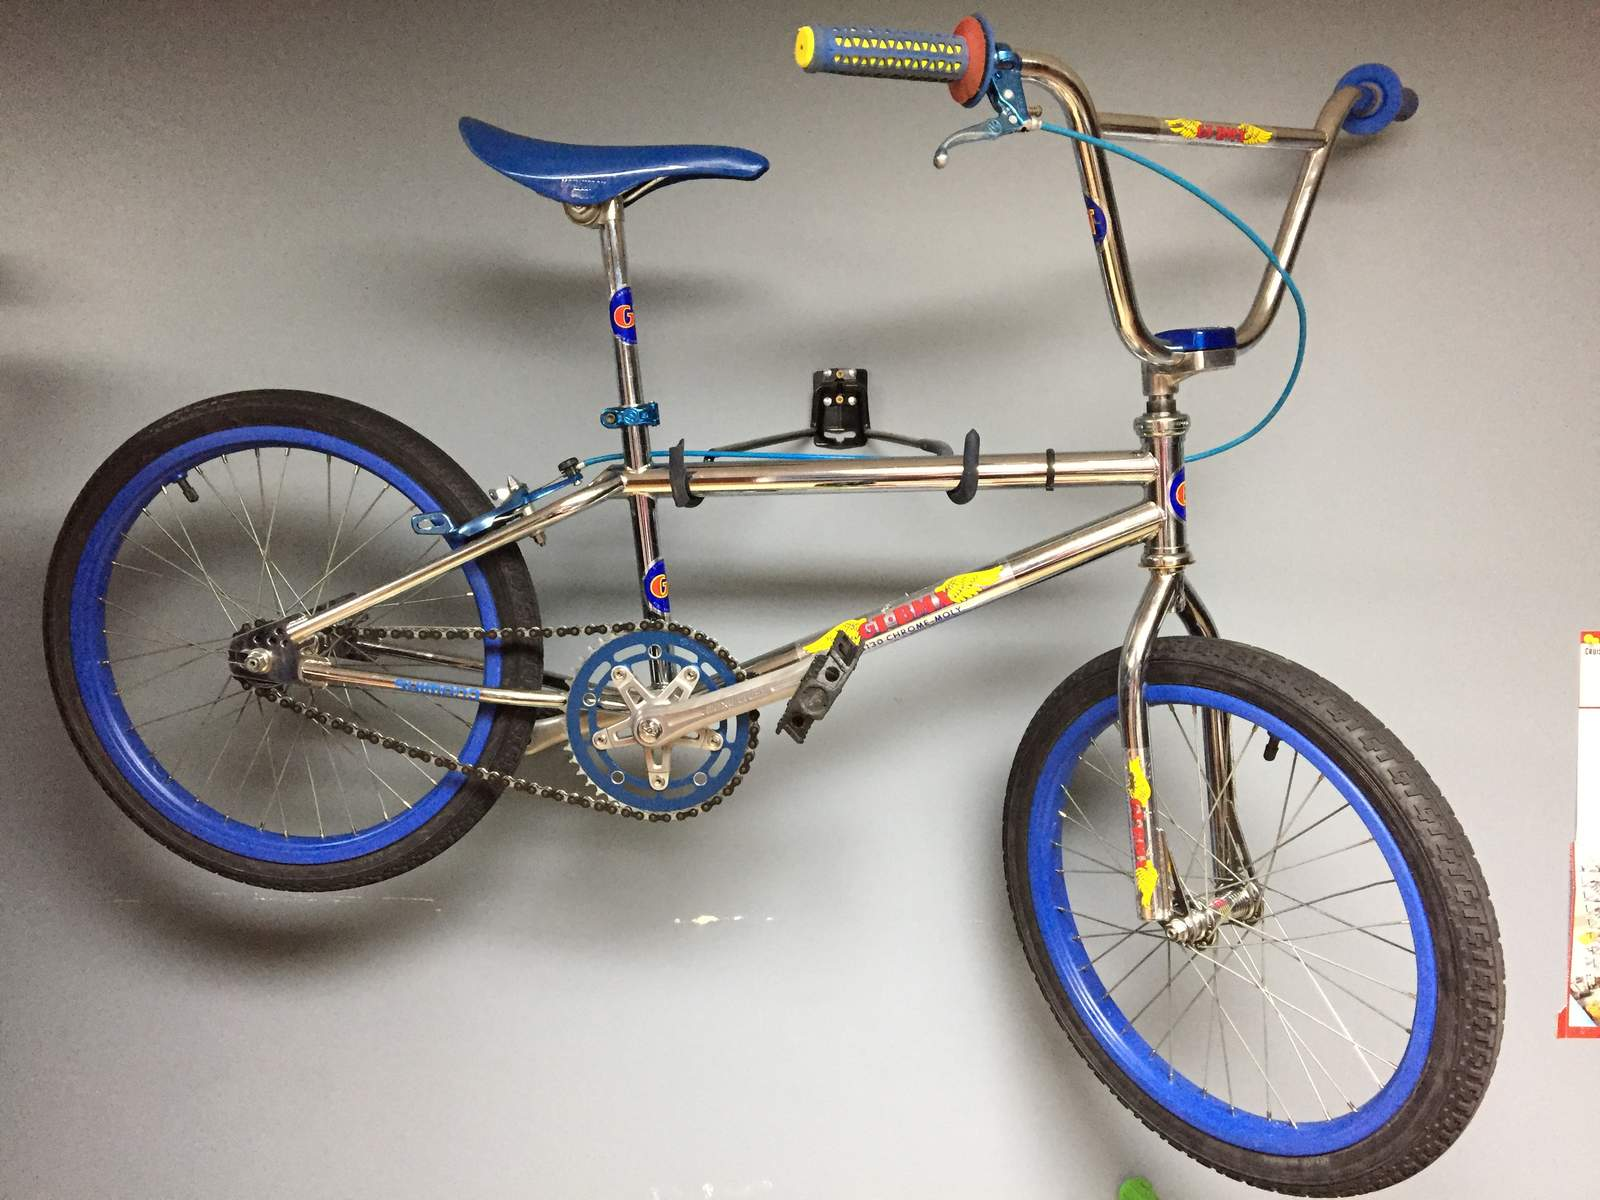 http://uploads.bmxmuseum.com/user-images/39250/80249b84-e842-447a-9257-96753655b0db5a0c6d4271.jpeg